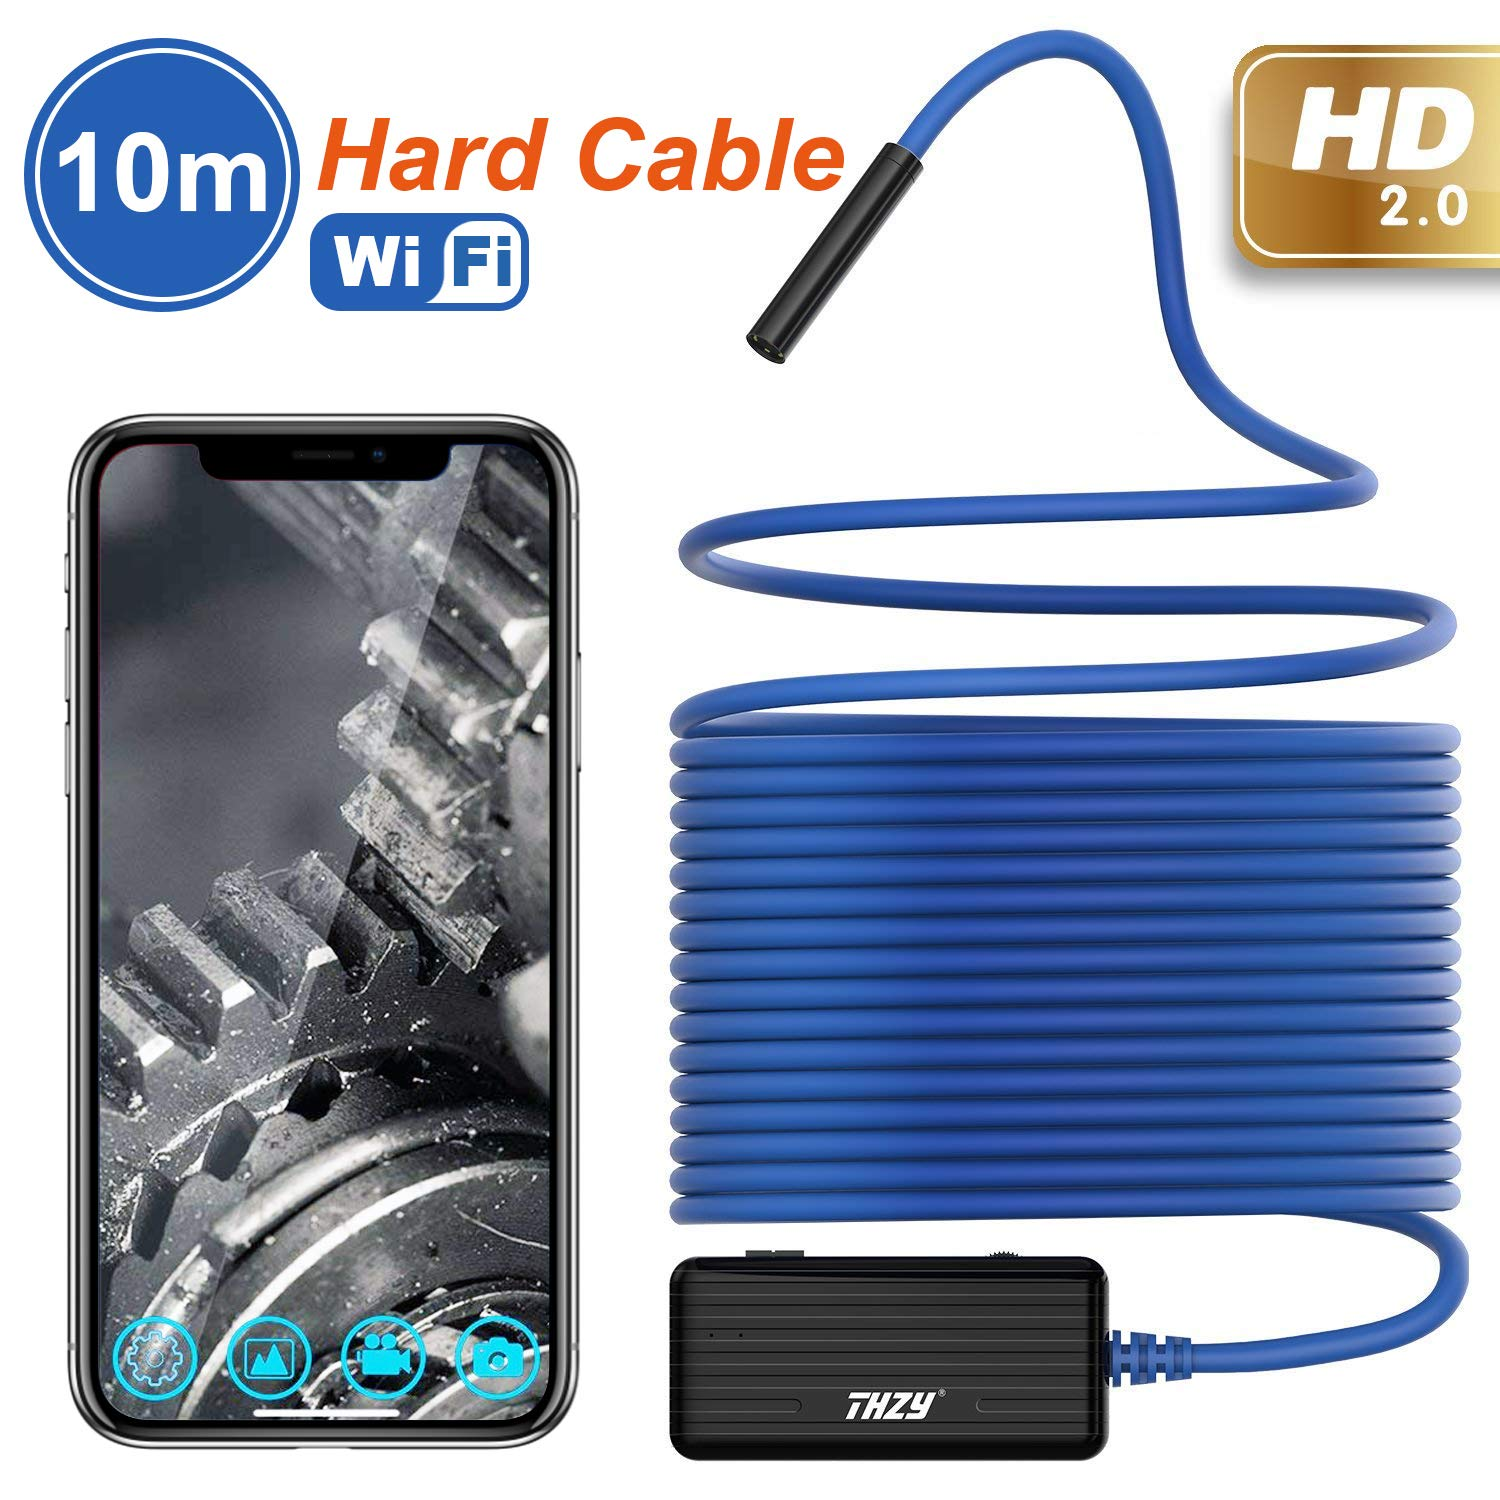 Wireless Endoscope THZY 1200P HD 10m WiFi Borescope Inspection Camera 2.0 Megapixels Snake Camera for Android iOS Smartphone, iPhone, Tablet iPad Blue by THZY